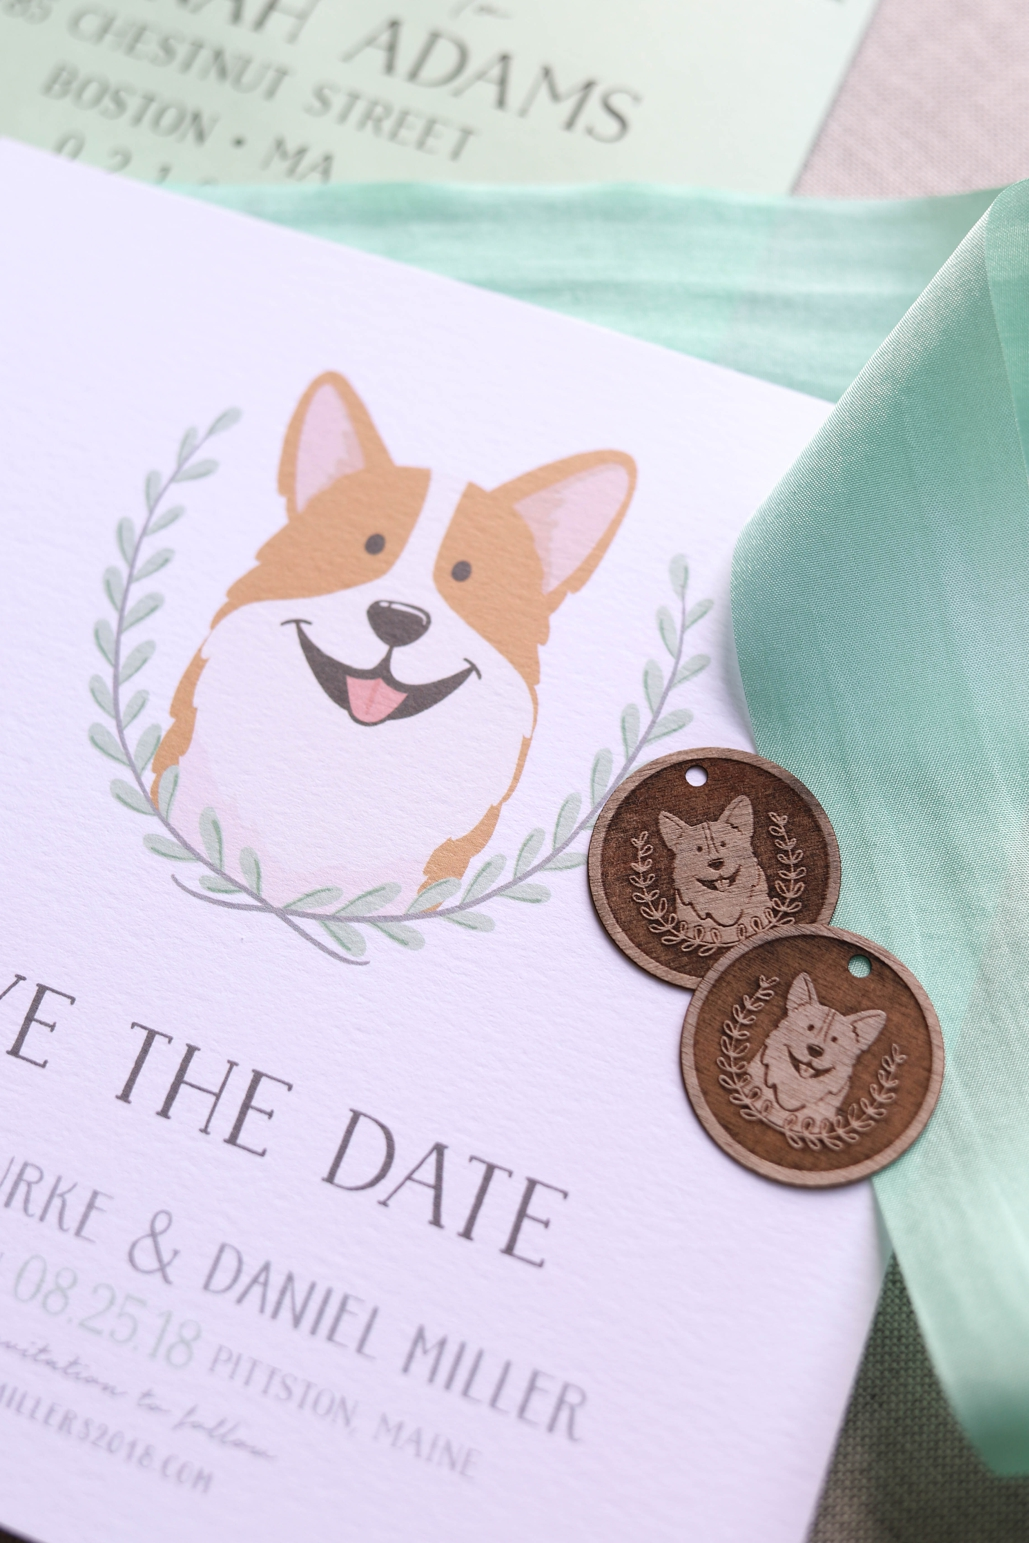 digital printed custom wedding invitations with custom cog portrait, corgi wedding invitation